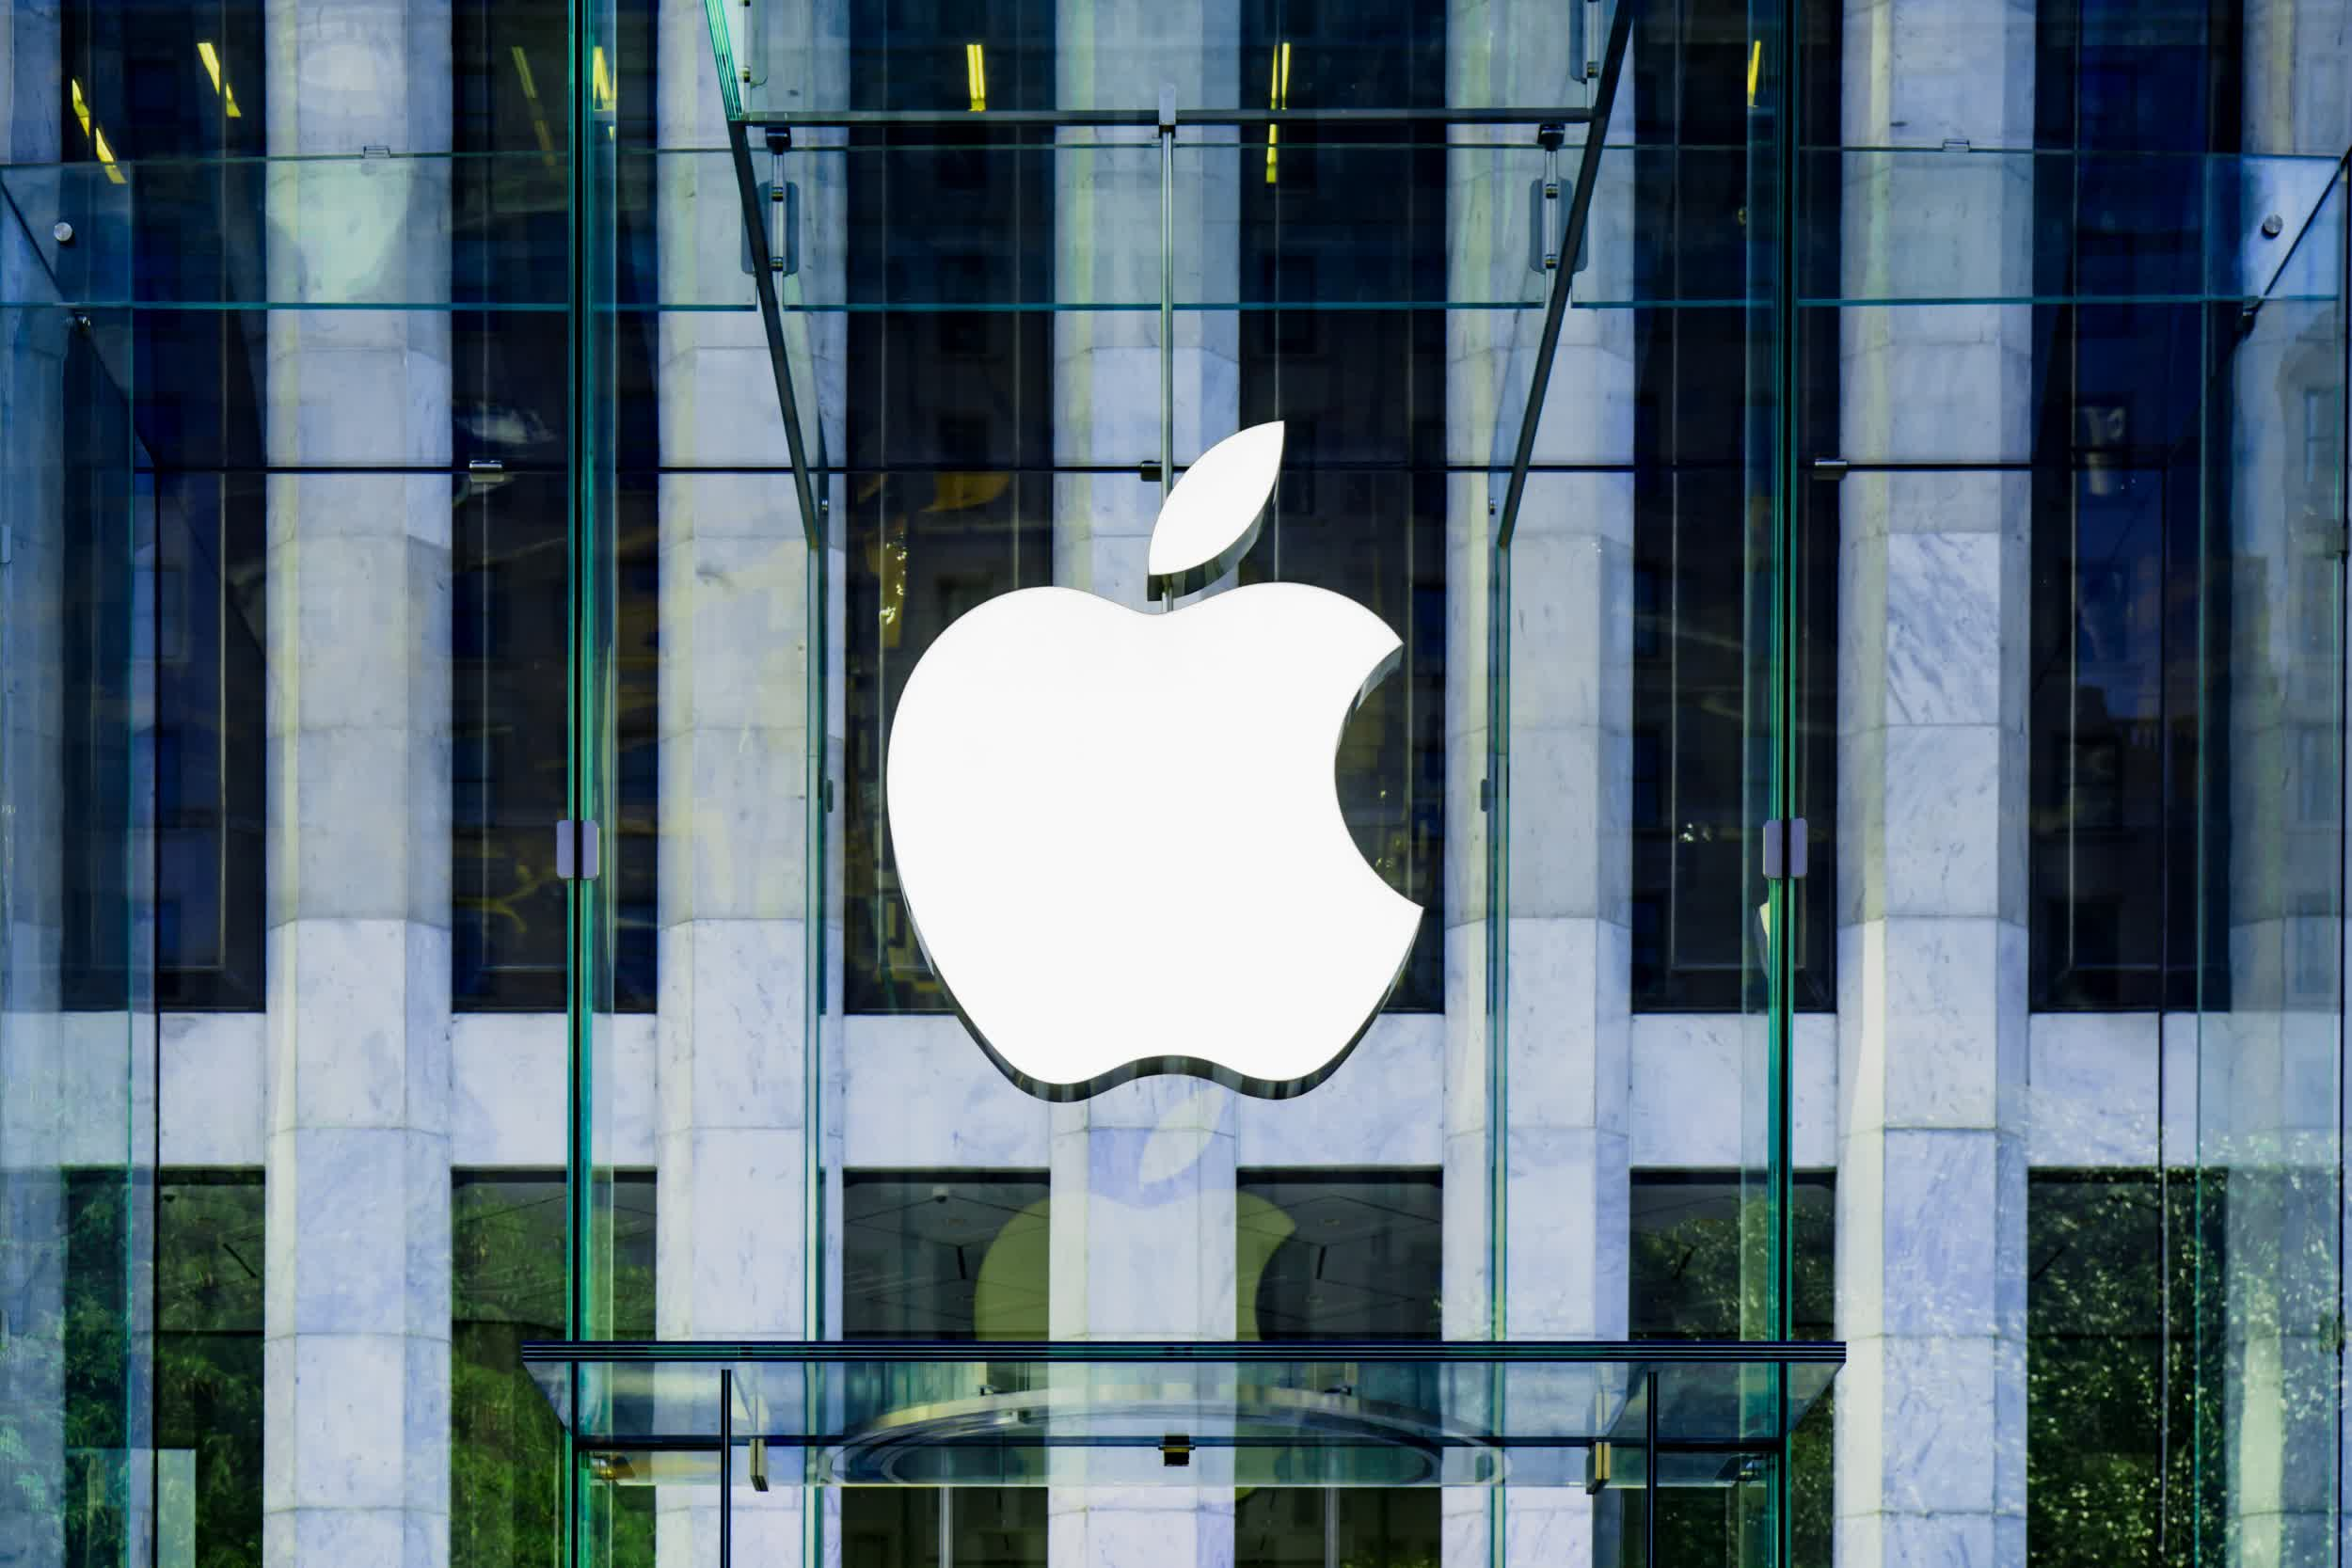 Apple has positioned itself for a colossal holiday quarter